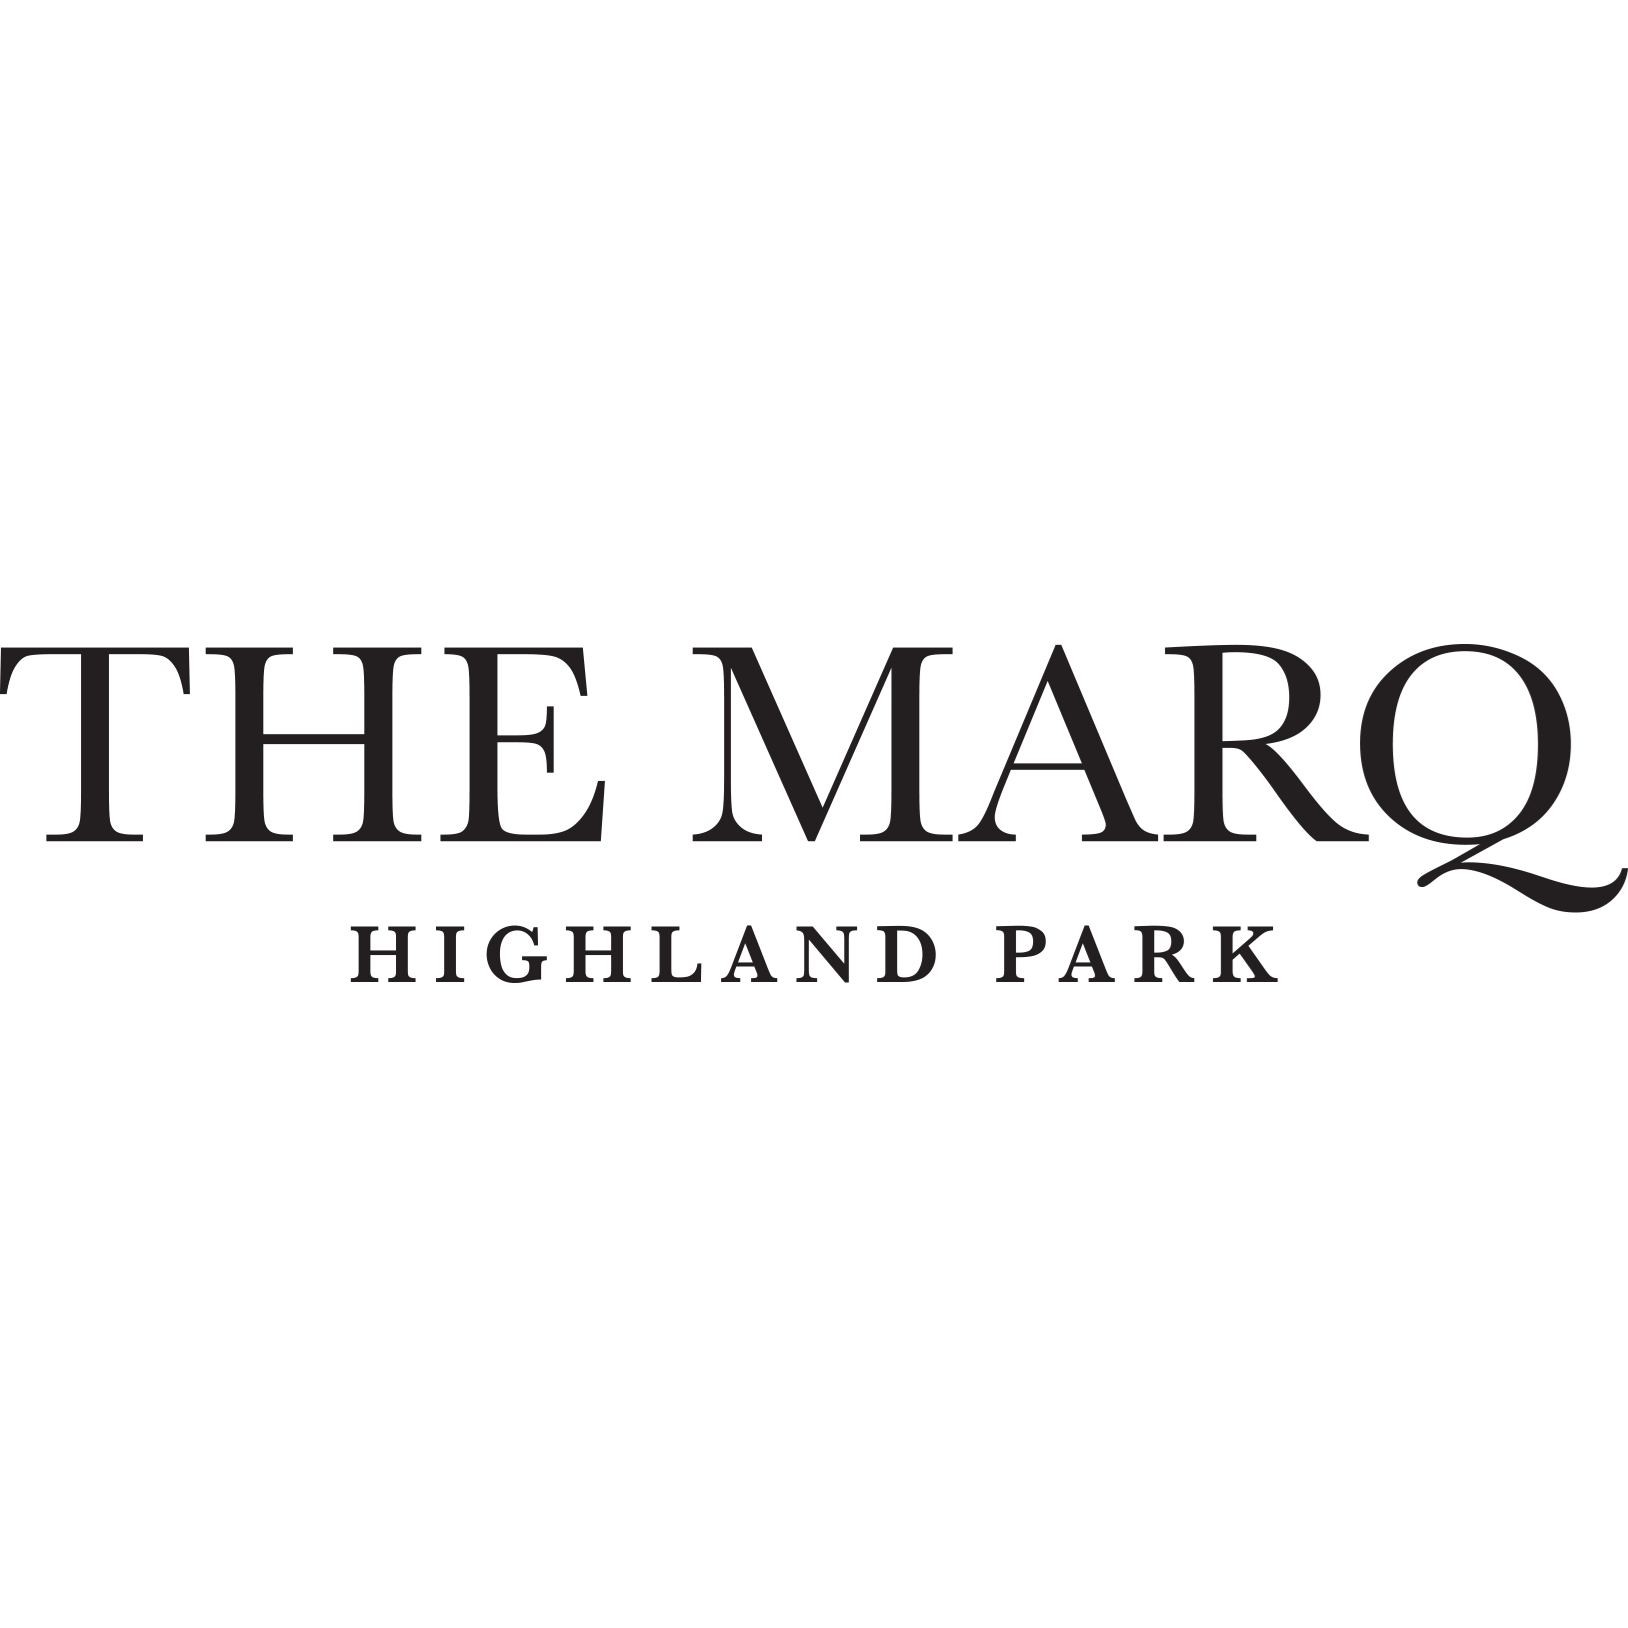 The Marq Highland Park Apartments